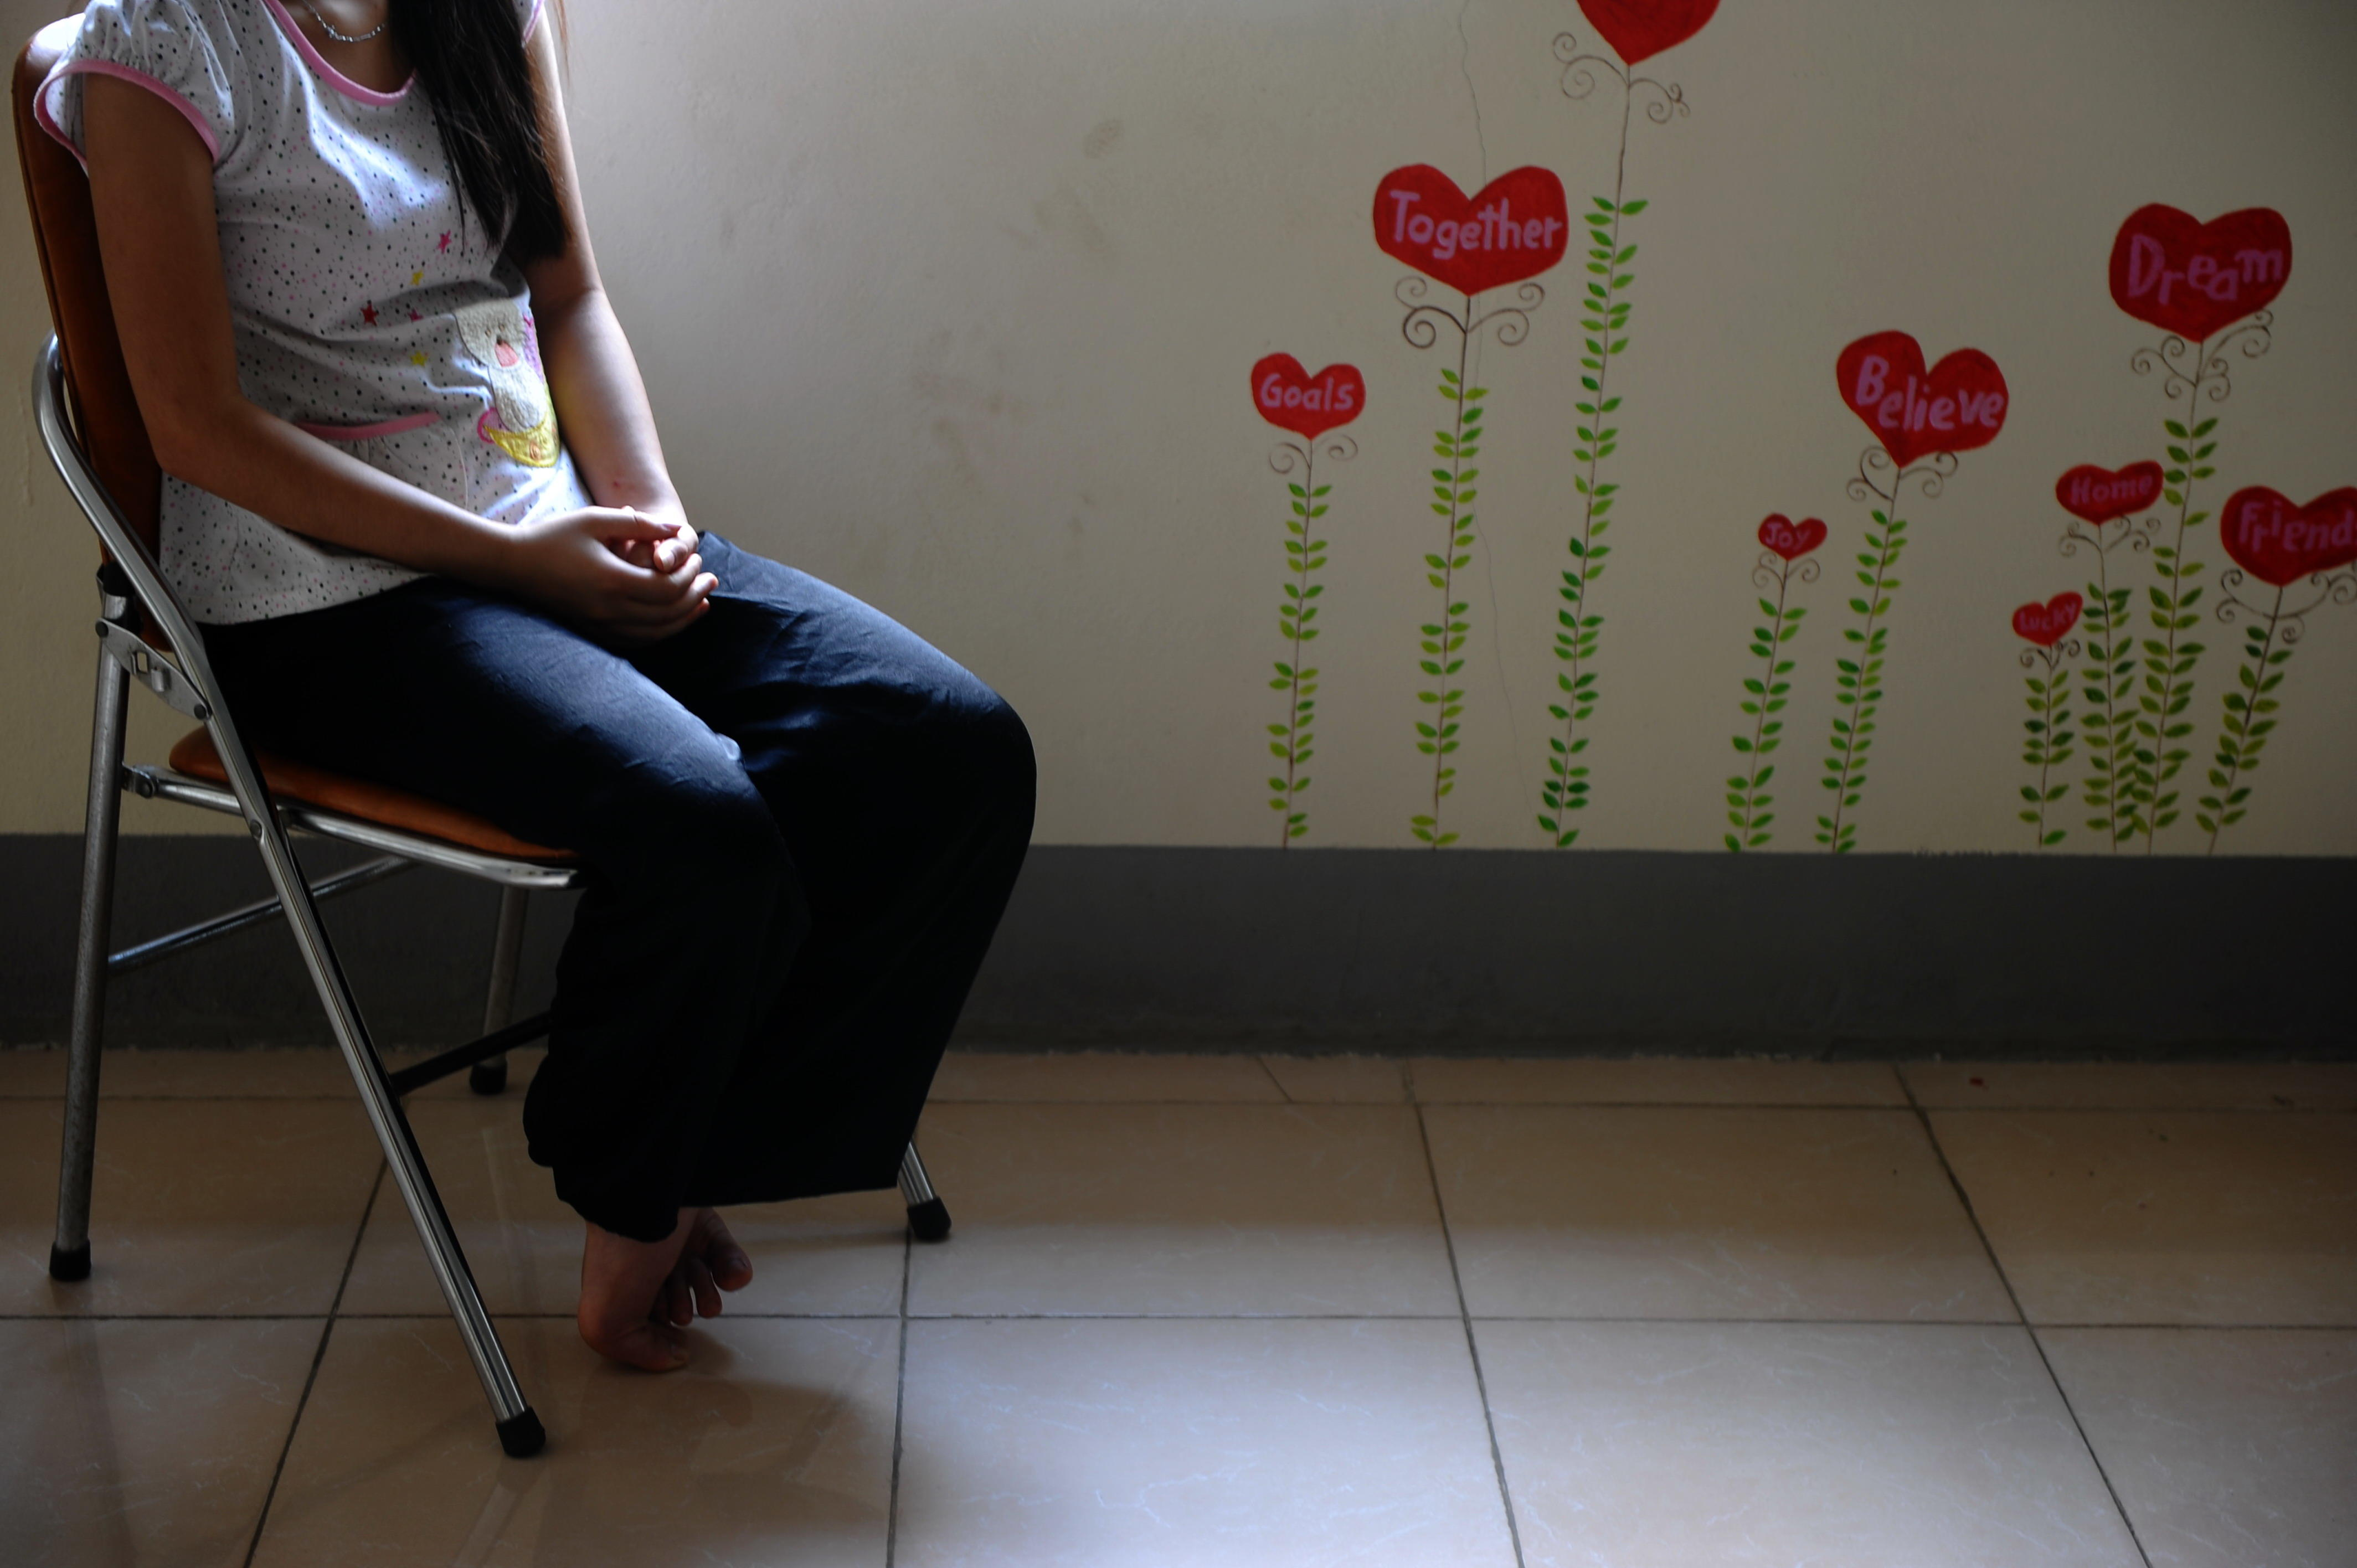 H'mong ethnic teenager May Na (whose name has been changed to protect her identity) sits in the living room at a government-run centre for trafficked women in the northern Vietnamese city of Lao Cai, May 9, 2014 (AFP Photo/Hoang Dinh Nam)